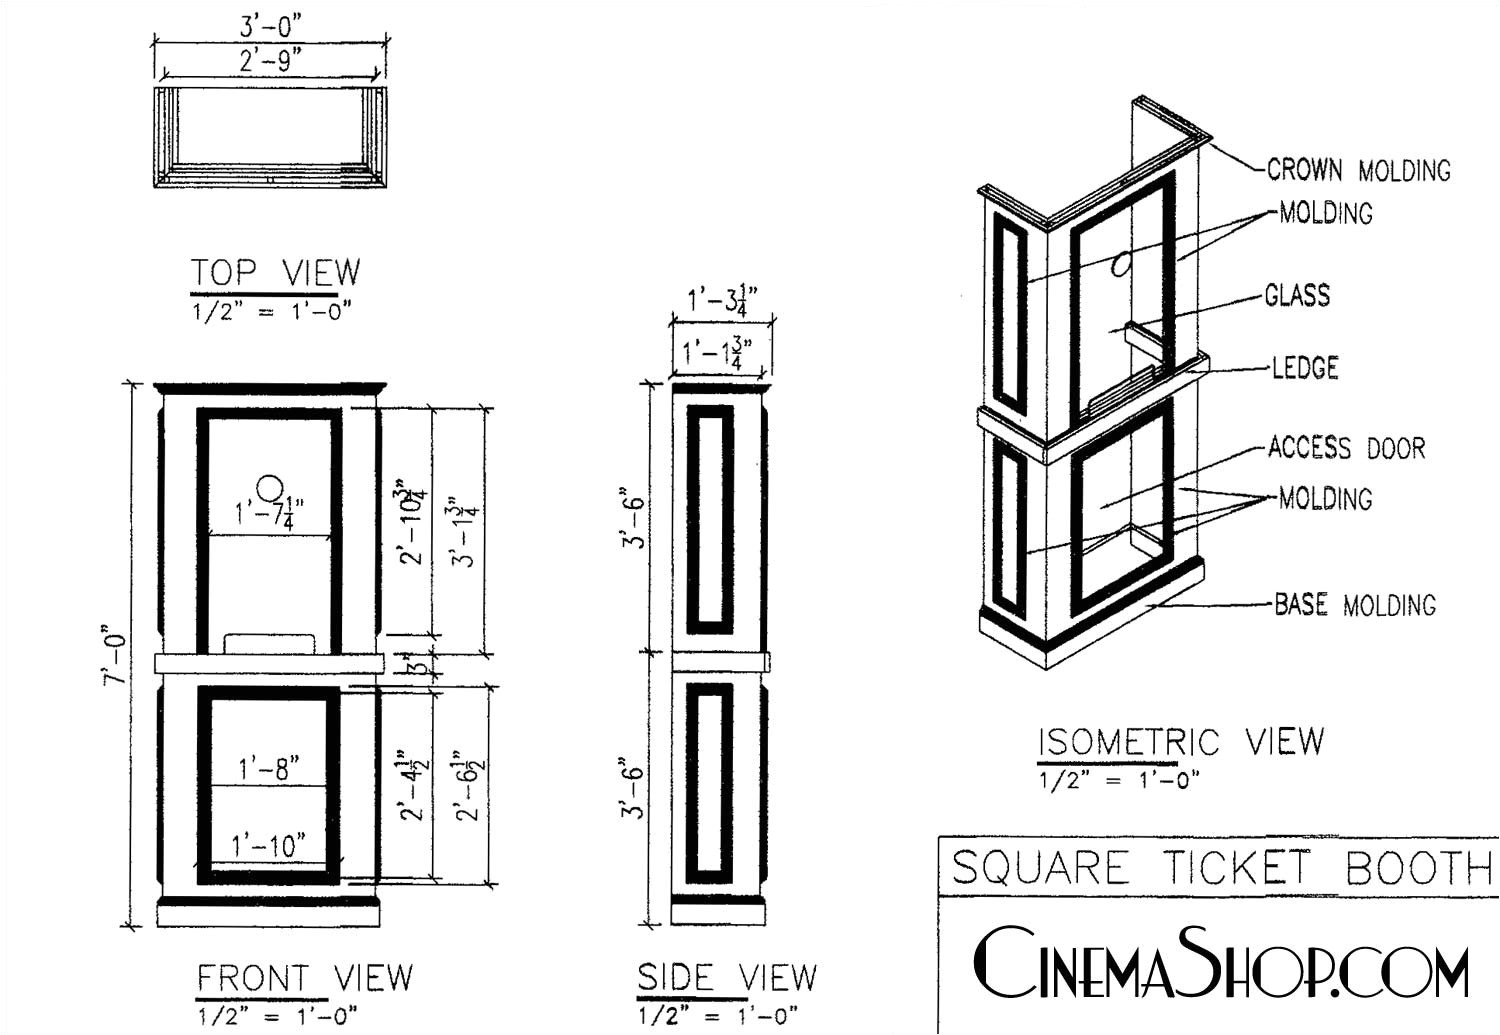 Home theater Ticket Booth Plans C Cinemashop Home theater Ticket Booths